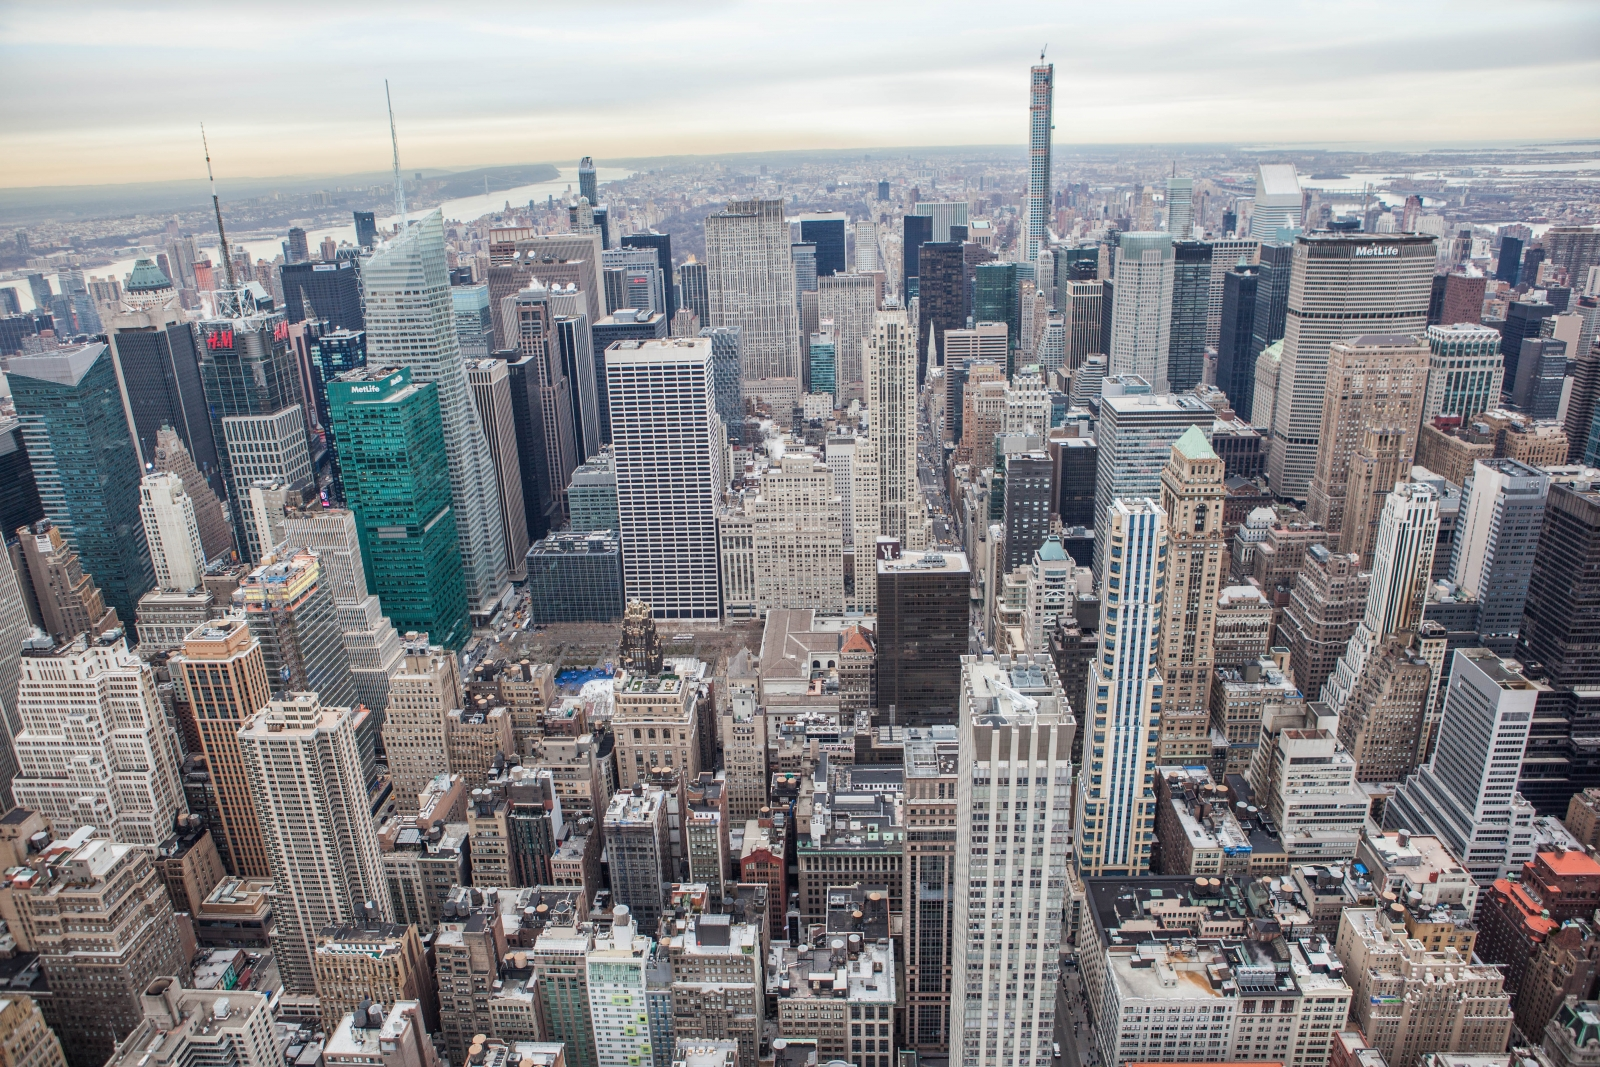 Enjoy sightseeing NYC from the Main Observation Deck